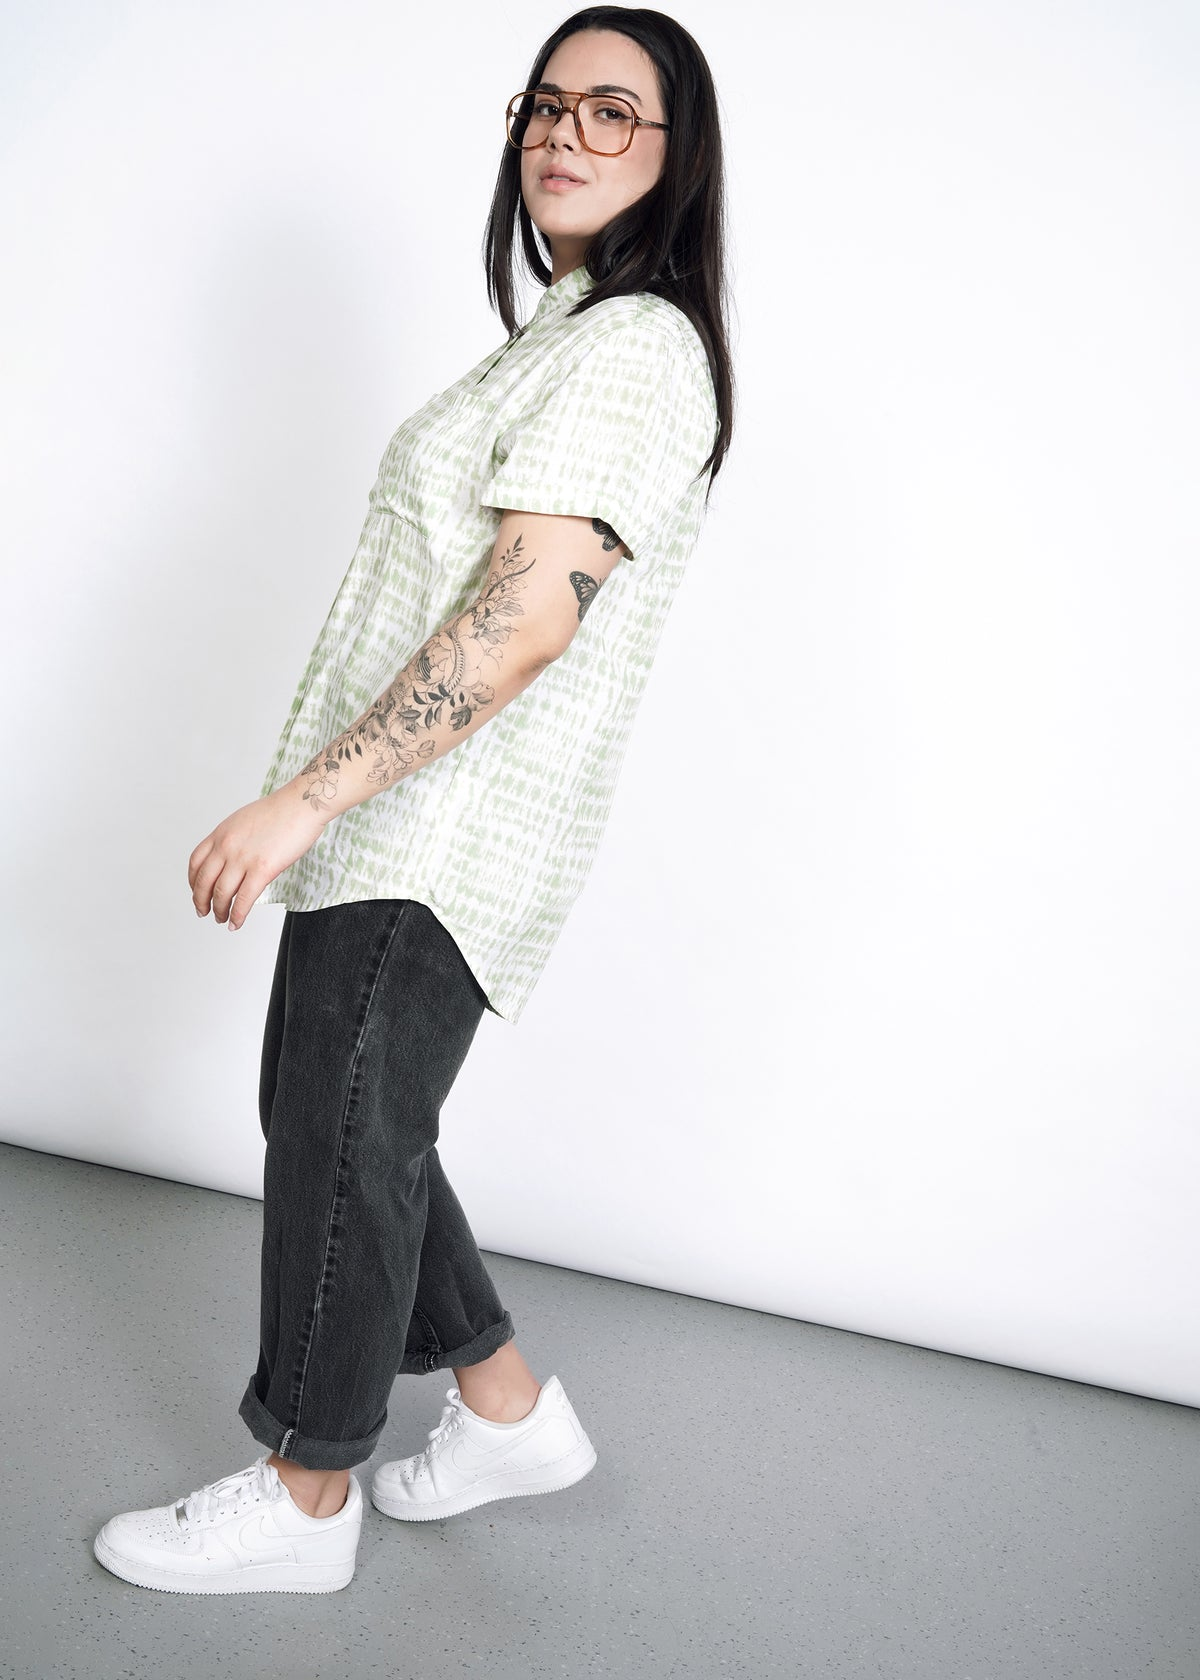 Side view of model wearing celadon shabori button up, with glasses, white sneakers, and black jeans, cuffed.